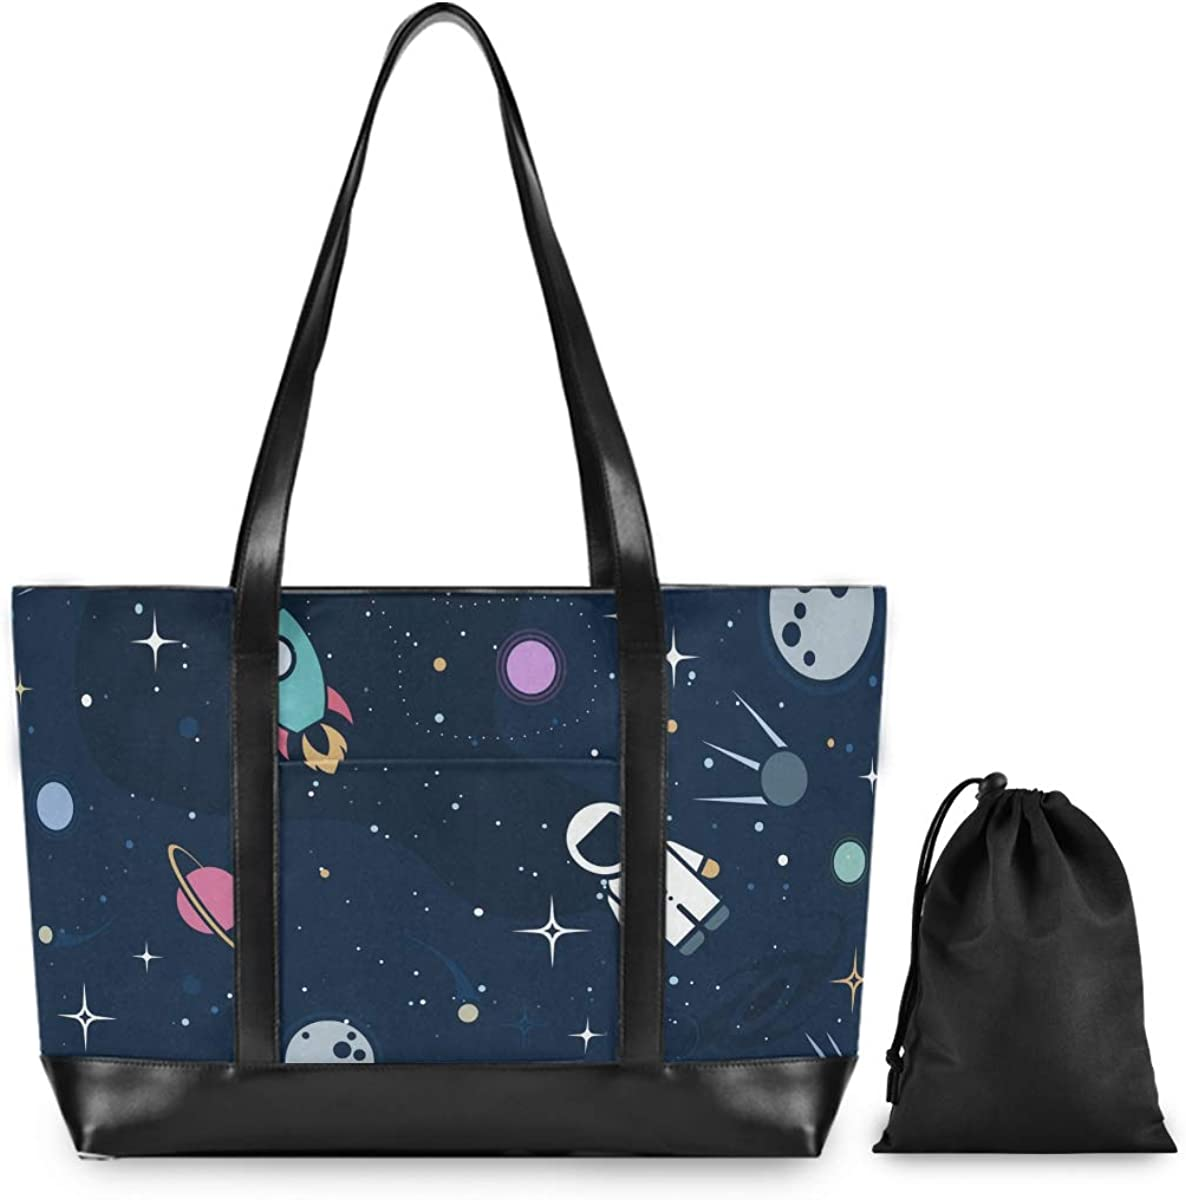 Space Rocket Astronaut Sun 15.6 Inch Laptop Tote Bag For Womens Large Tote Bag Lightweight Shoulder Bag Multi-Pocket Canvas Leather Business Work Office Briefcase for Computer